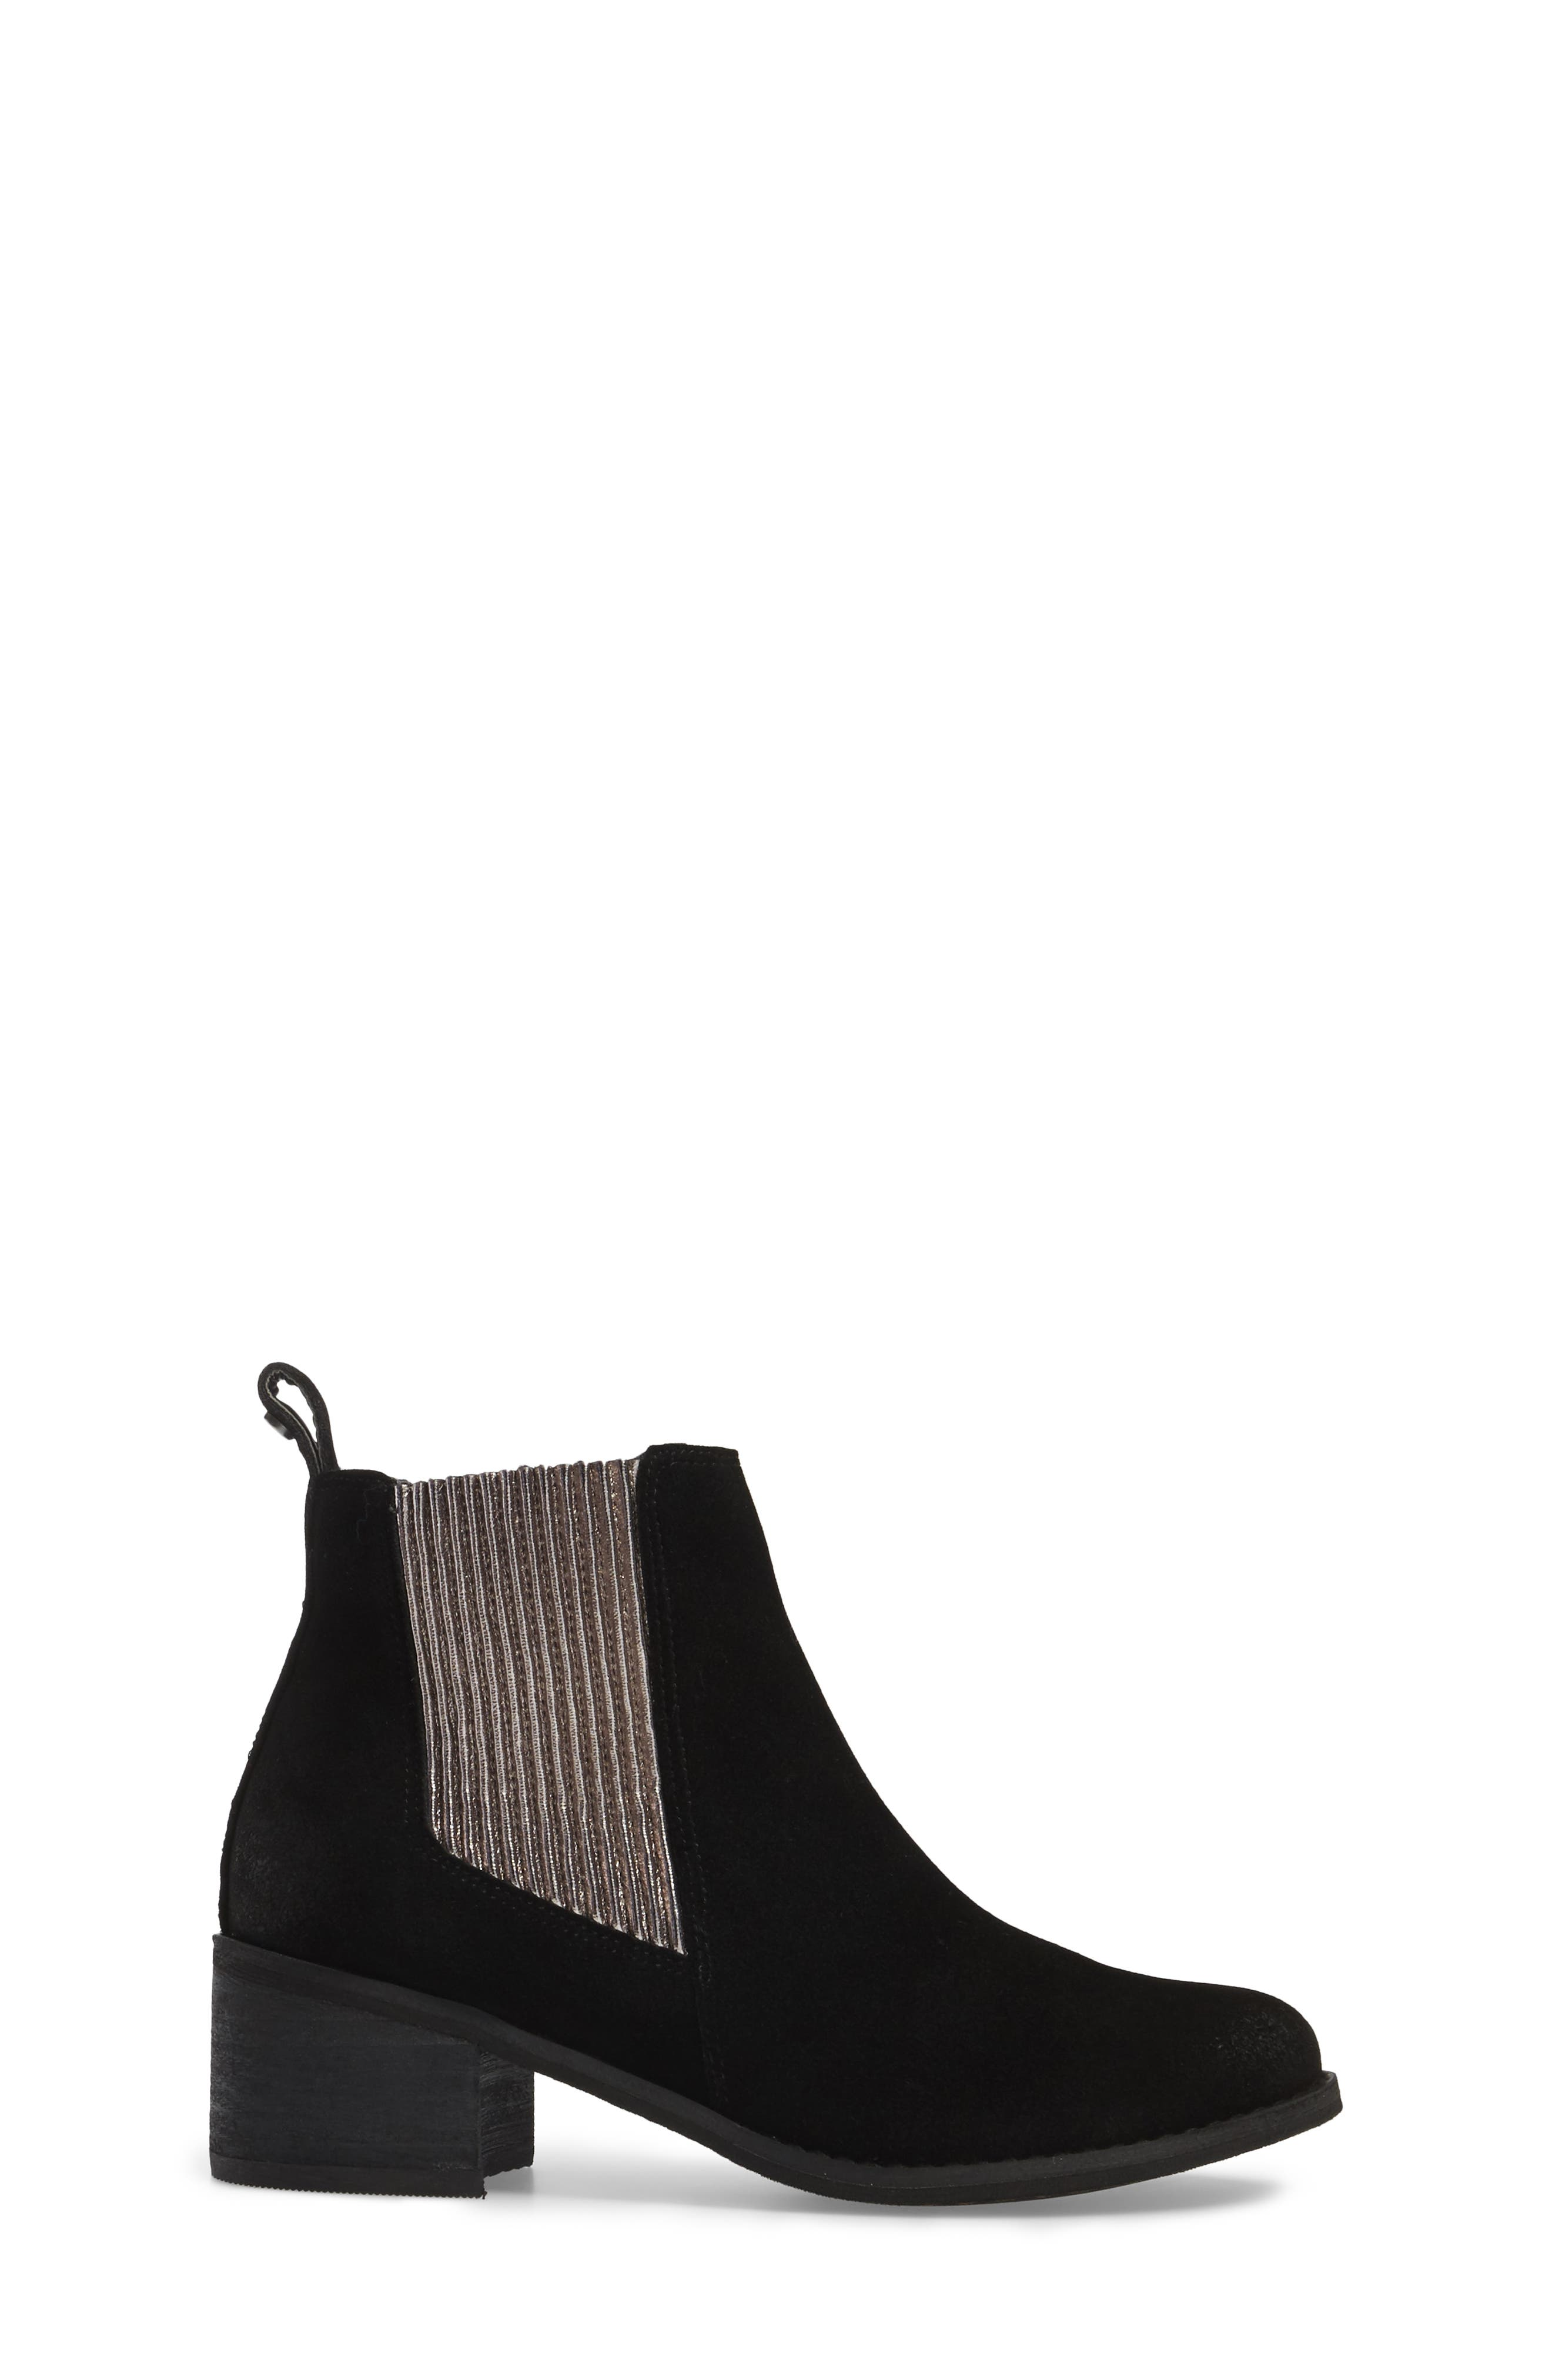 Juniper Pleated Chelsea Bootie,                             Alternate thumbnail 3, color,                             001